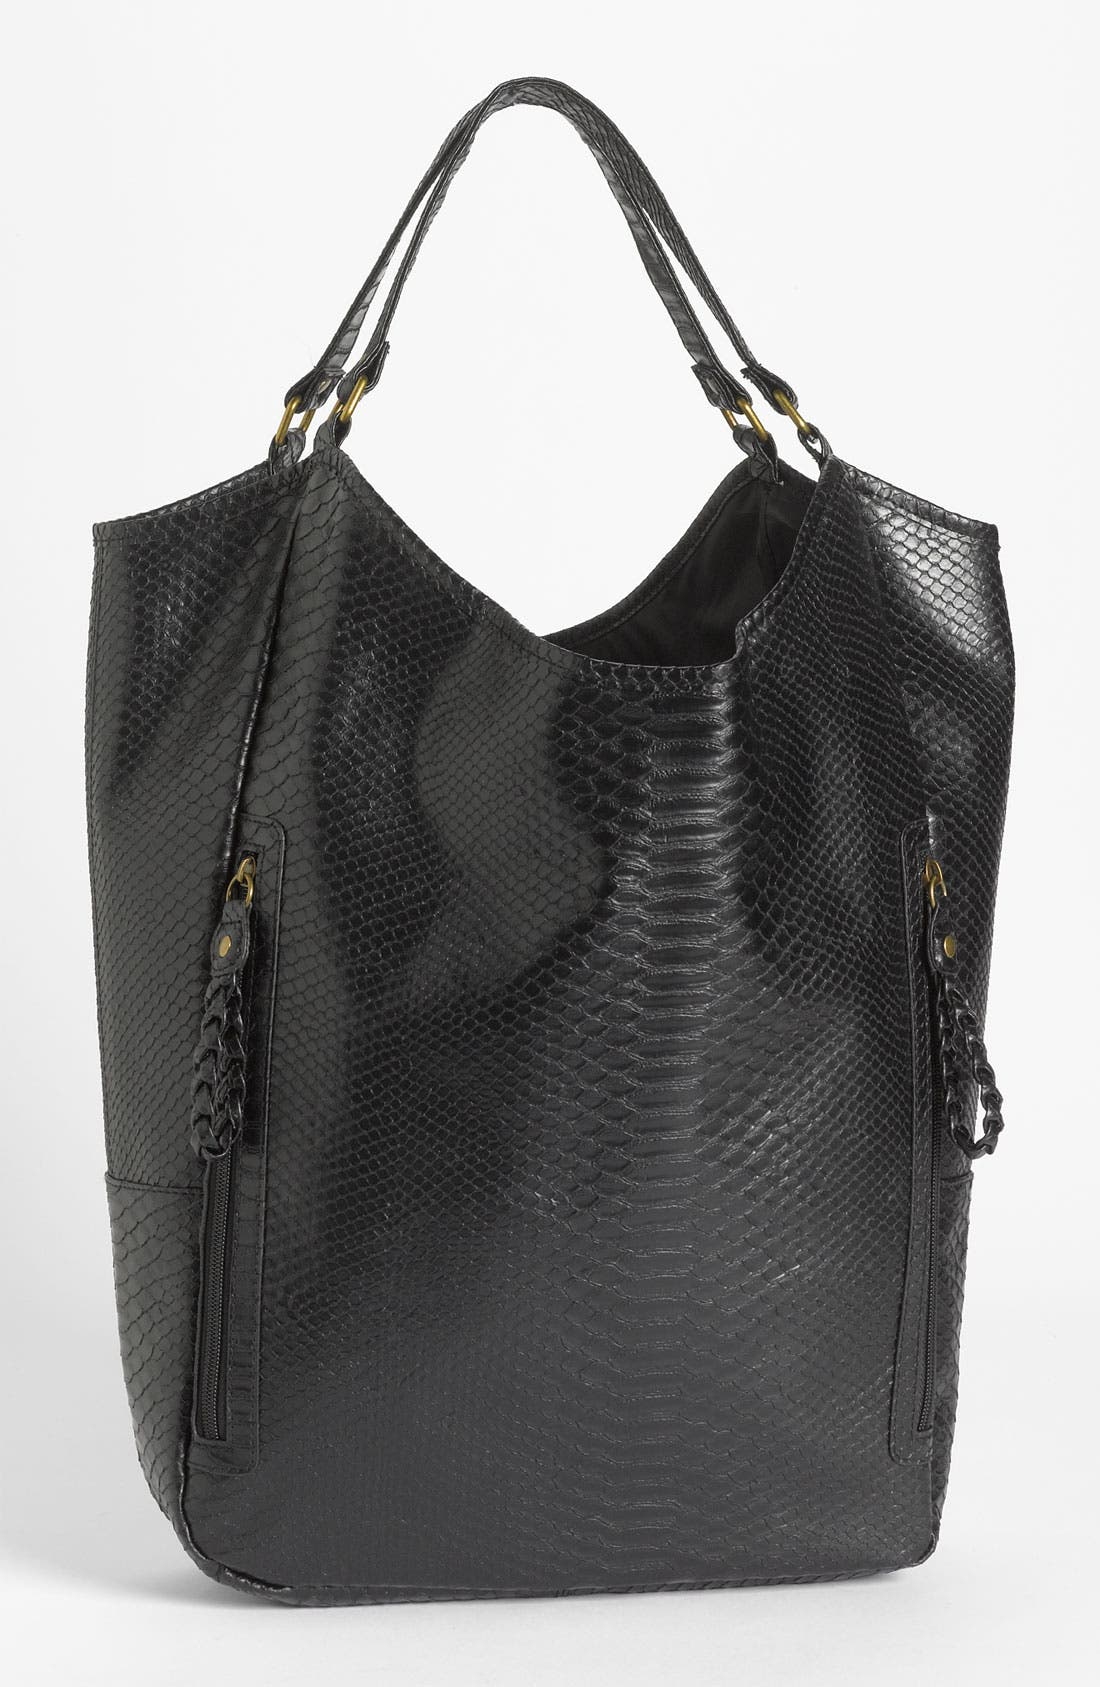 Main Image - Lulu Snake Embossed Tote Bag